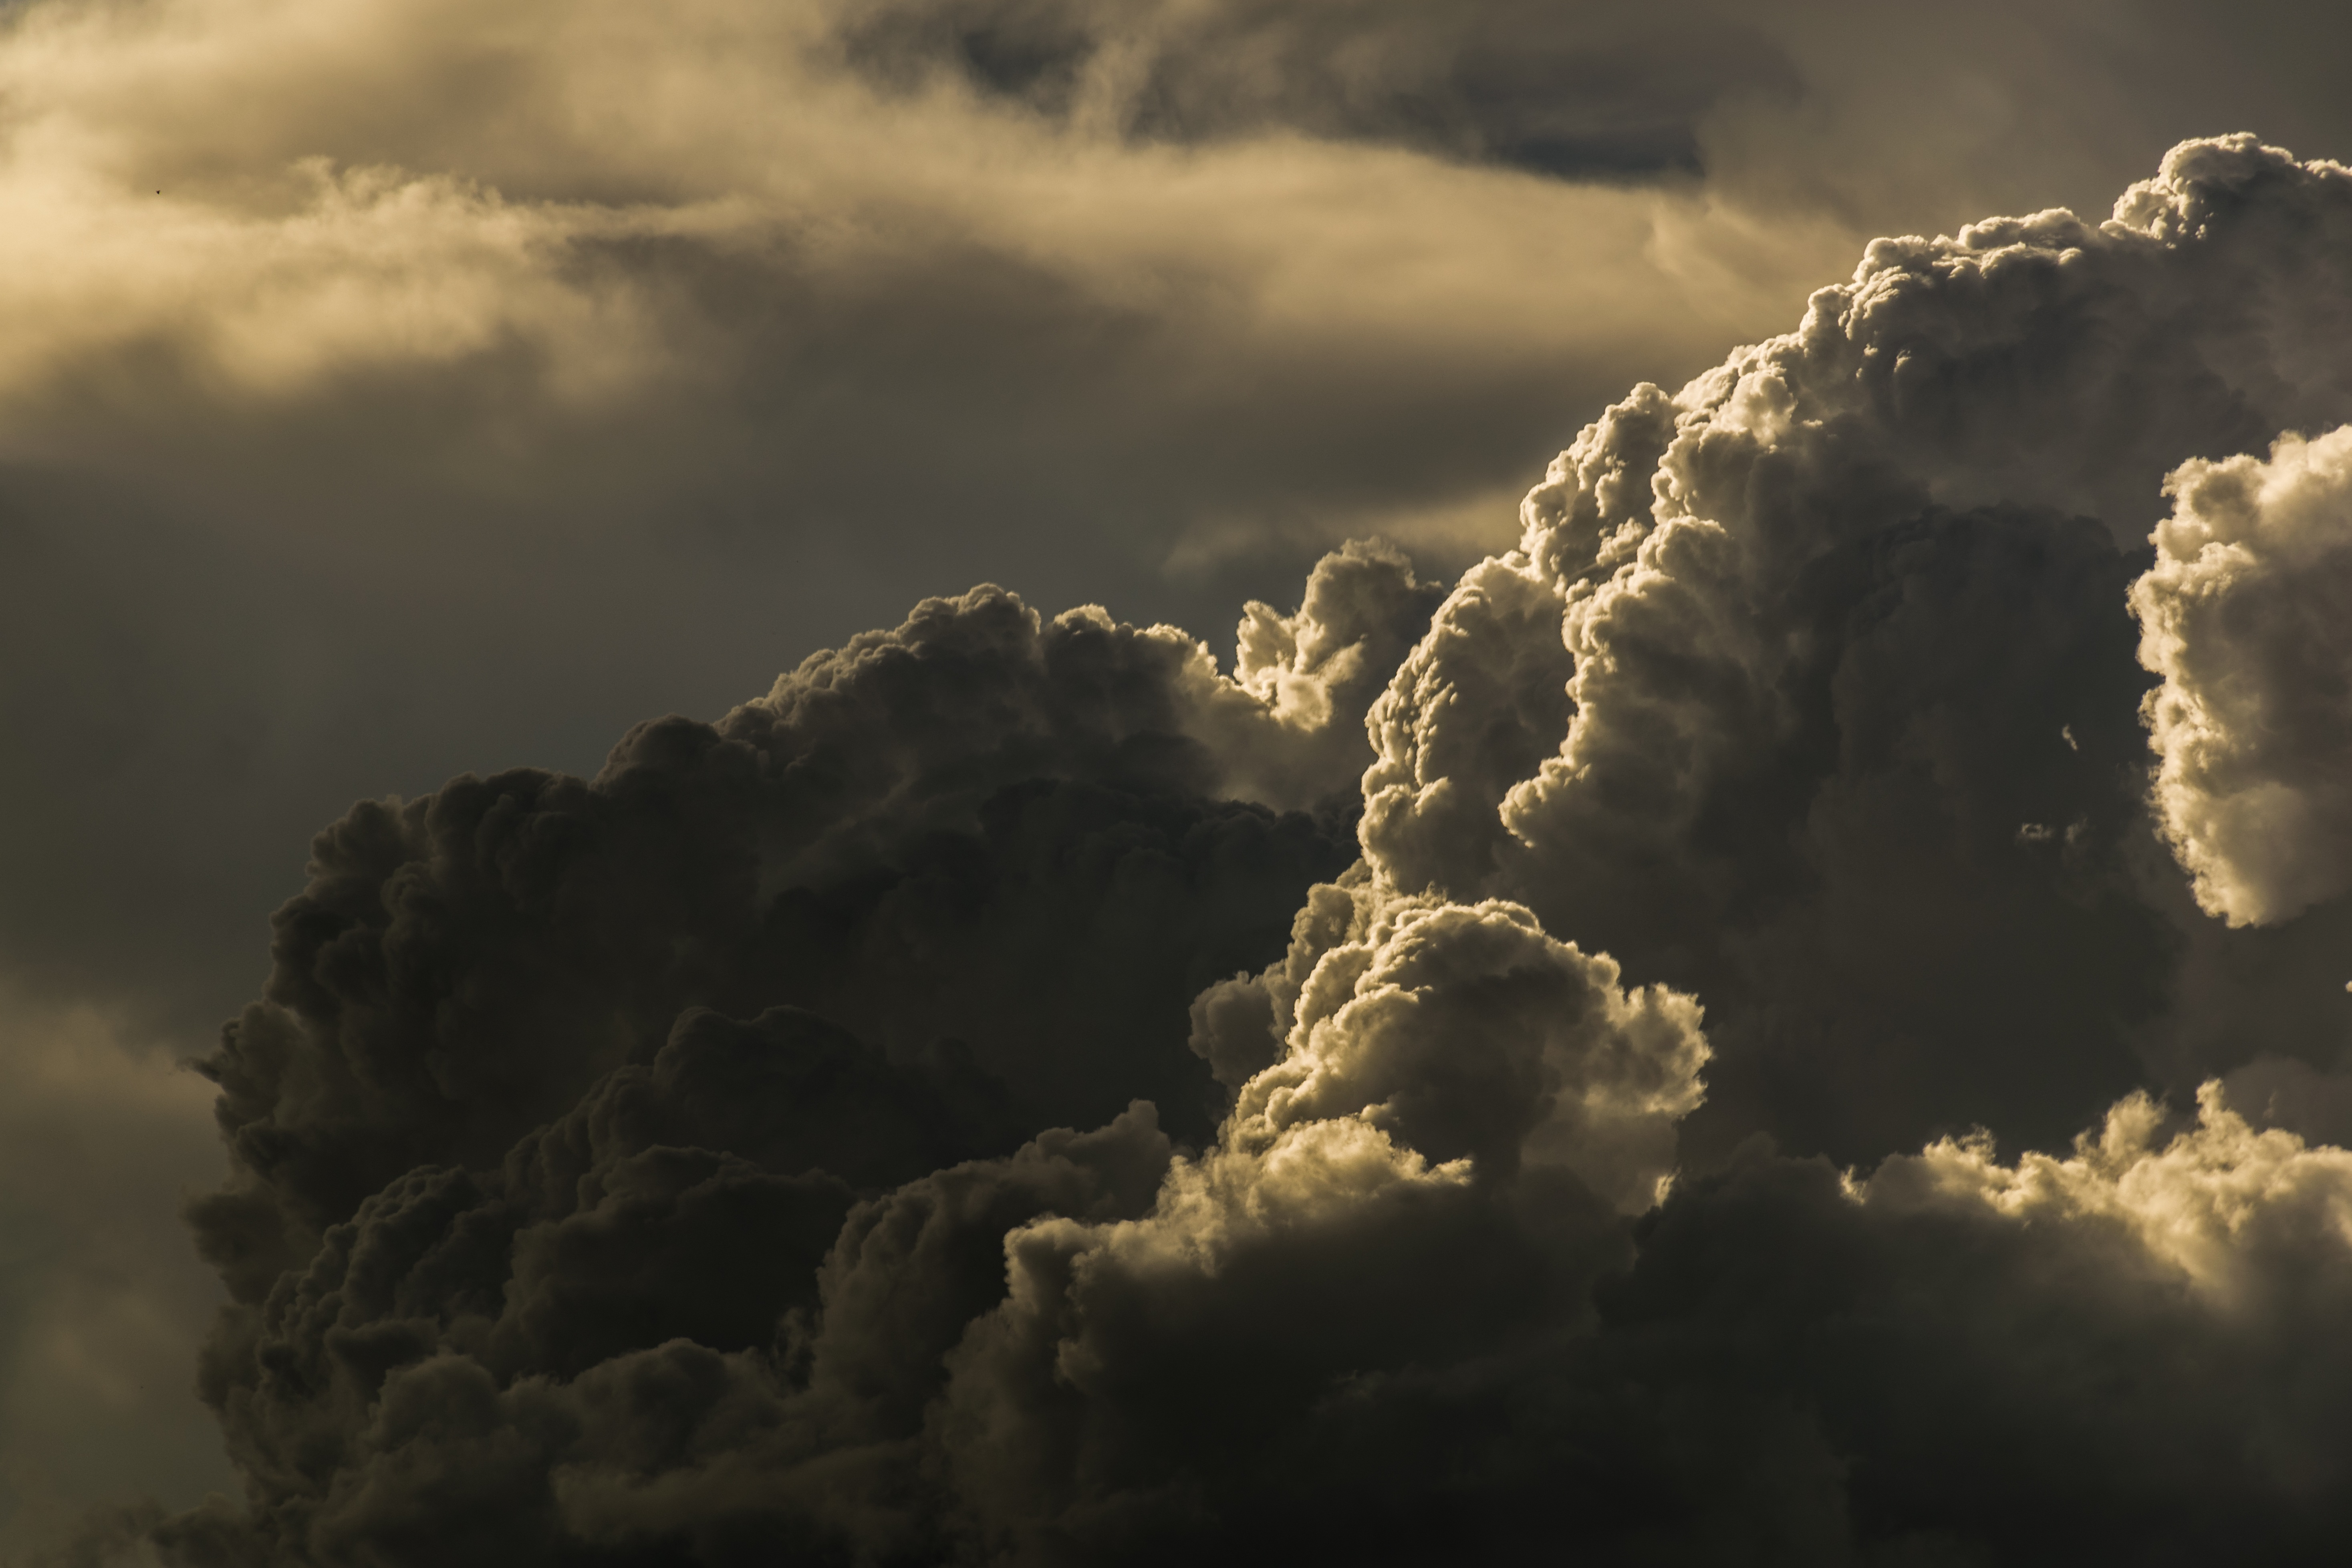 Nature Hd Wallpapers For Iphone Clouds Illustration 183 Free Stock Photo